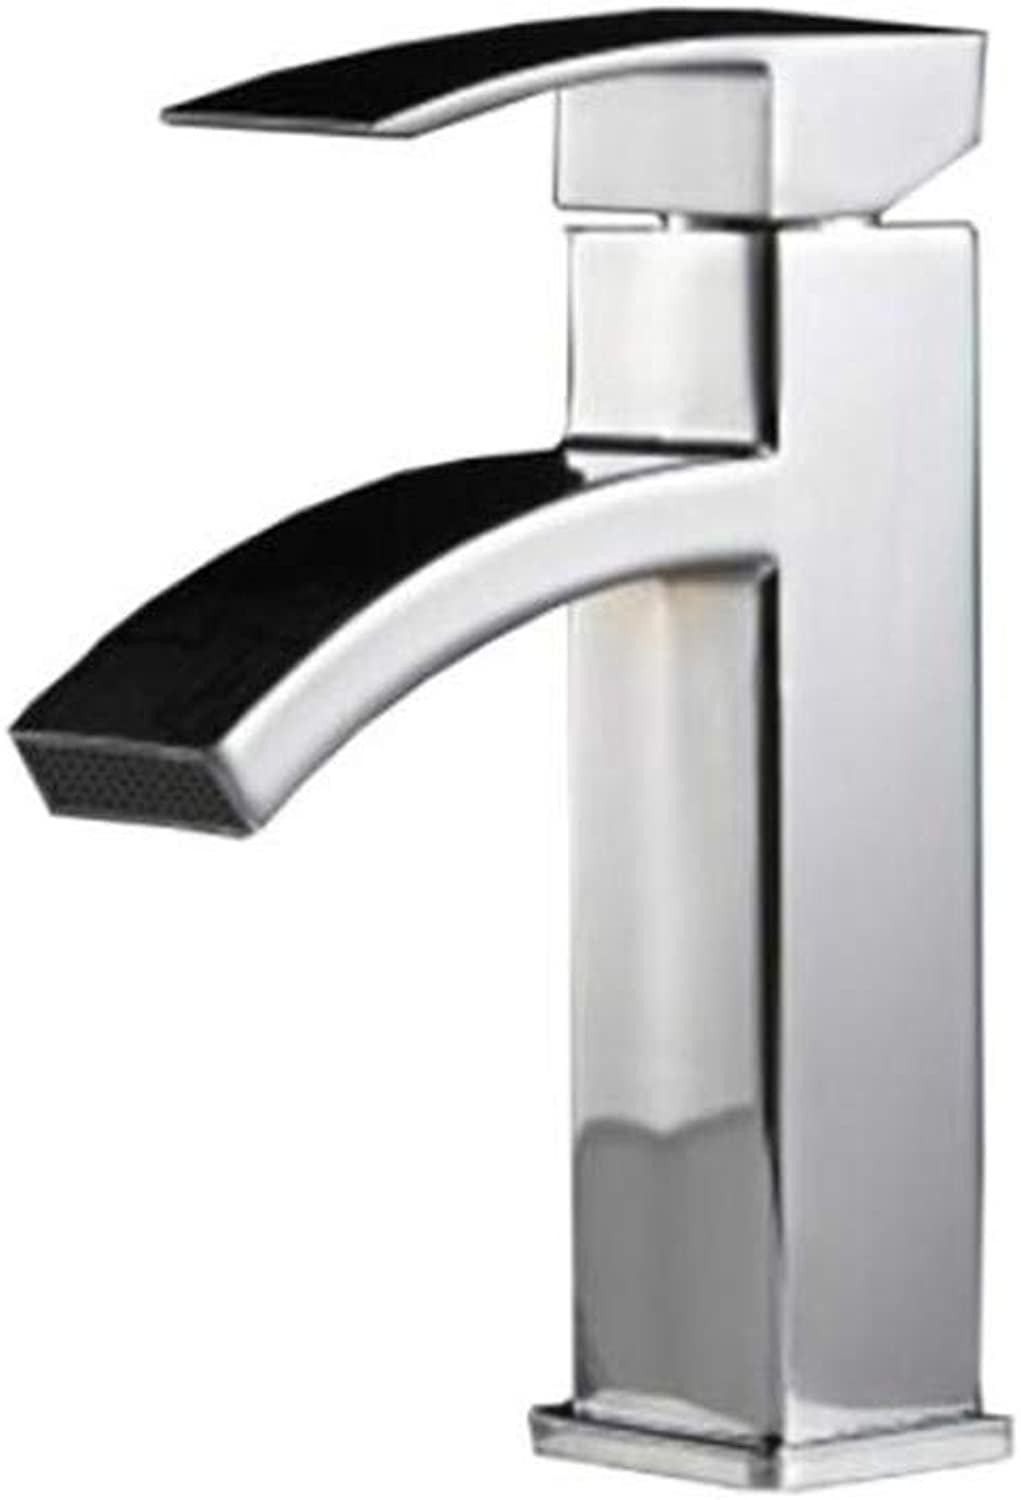 Faucet Waste Mono Spoutbathroom Faucet Cold and Hot Dual-Purpose Single-Hole Single-Sitting Faucet Waterfall Basin Faucet Low-Grade Basin